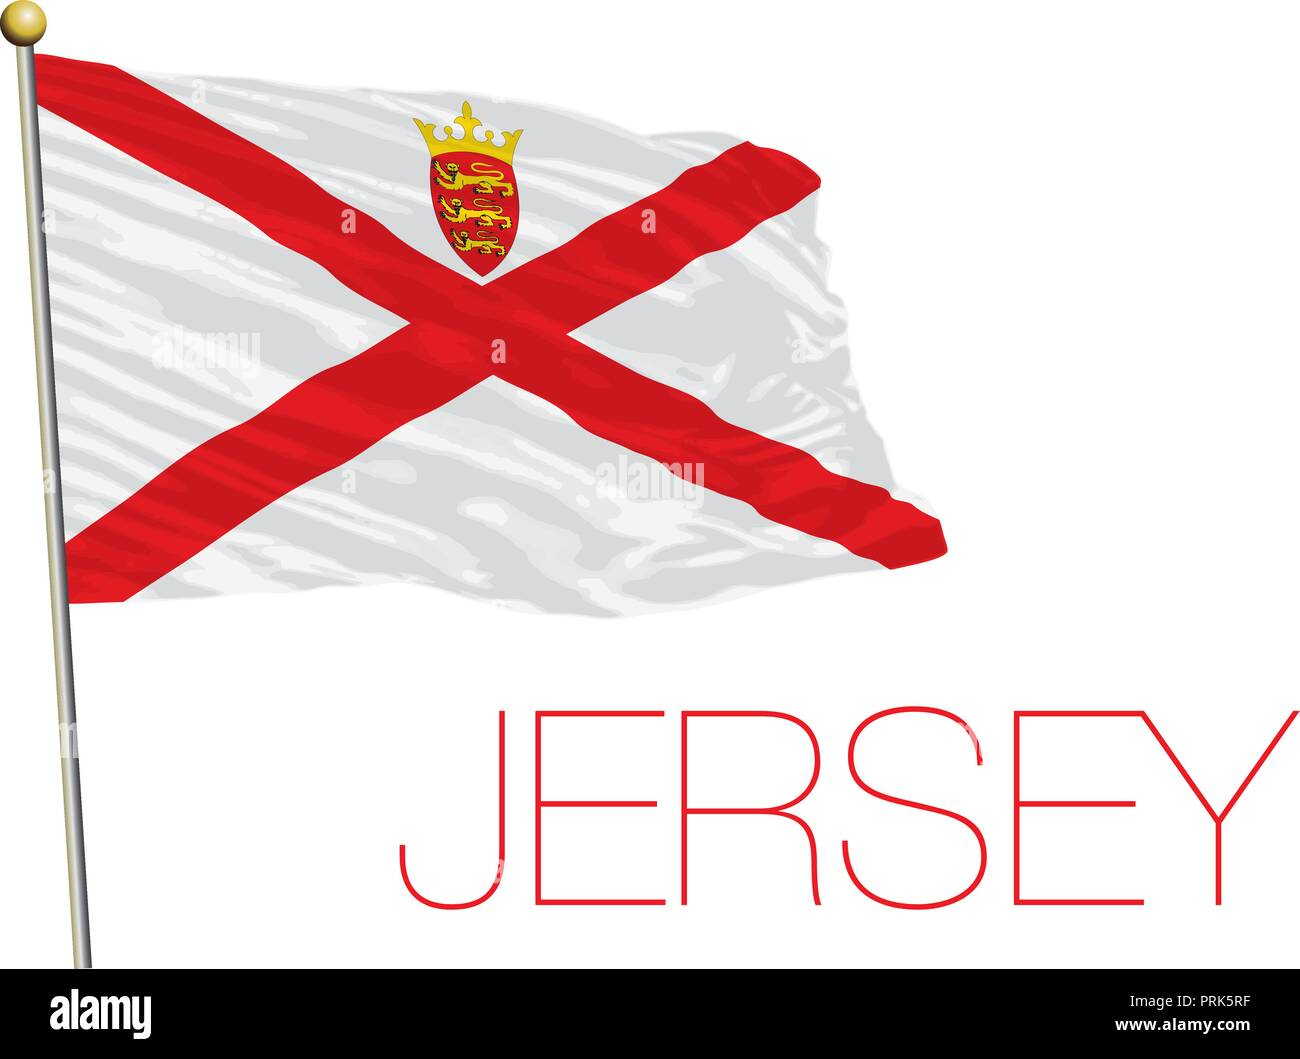 Jersey official flag, vector illustration - Stock Vector